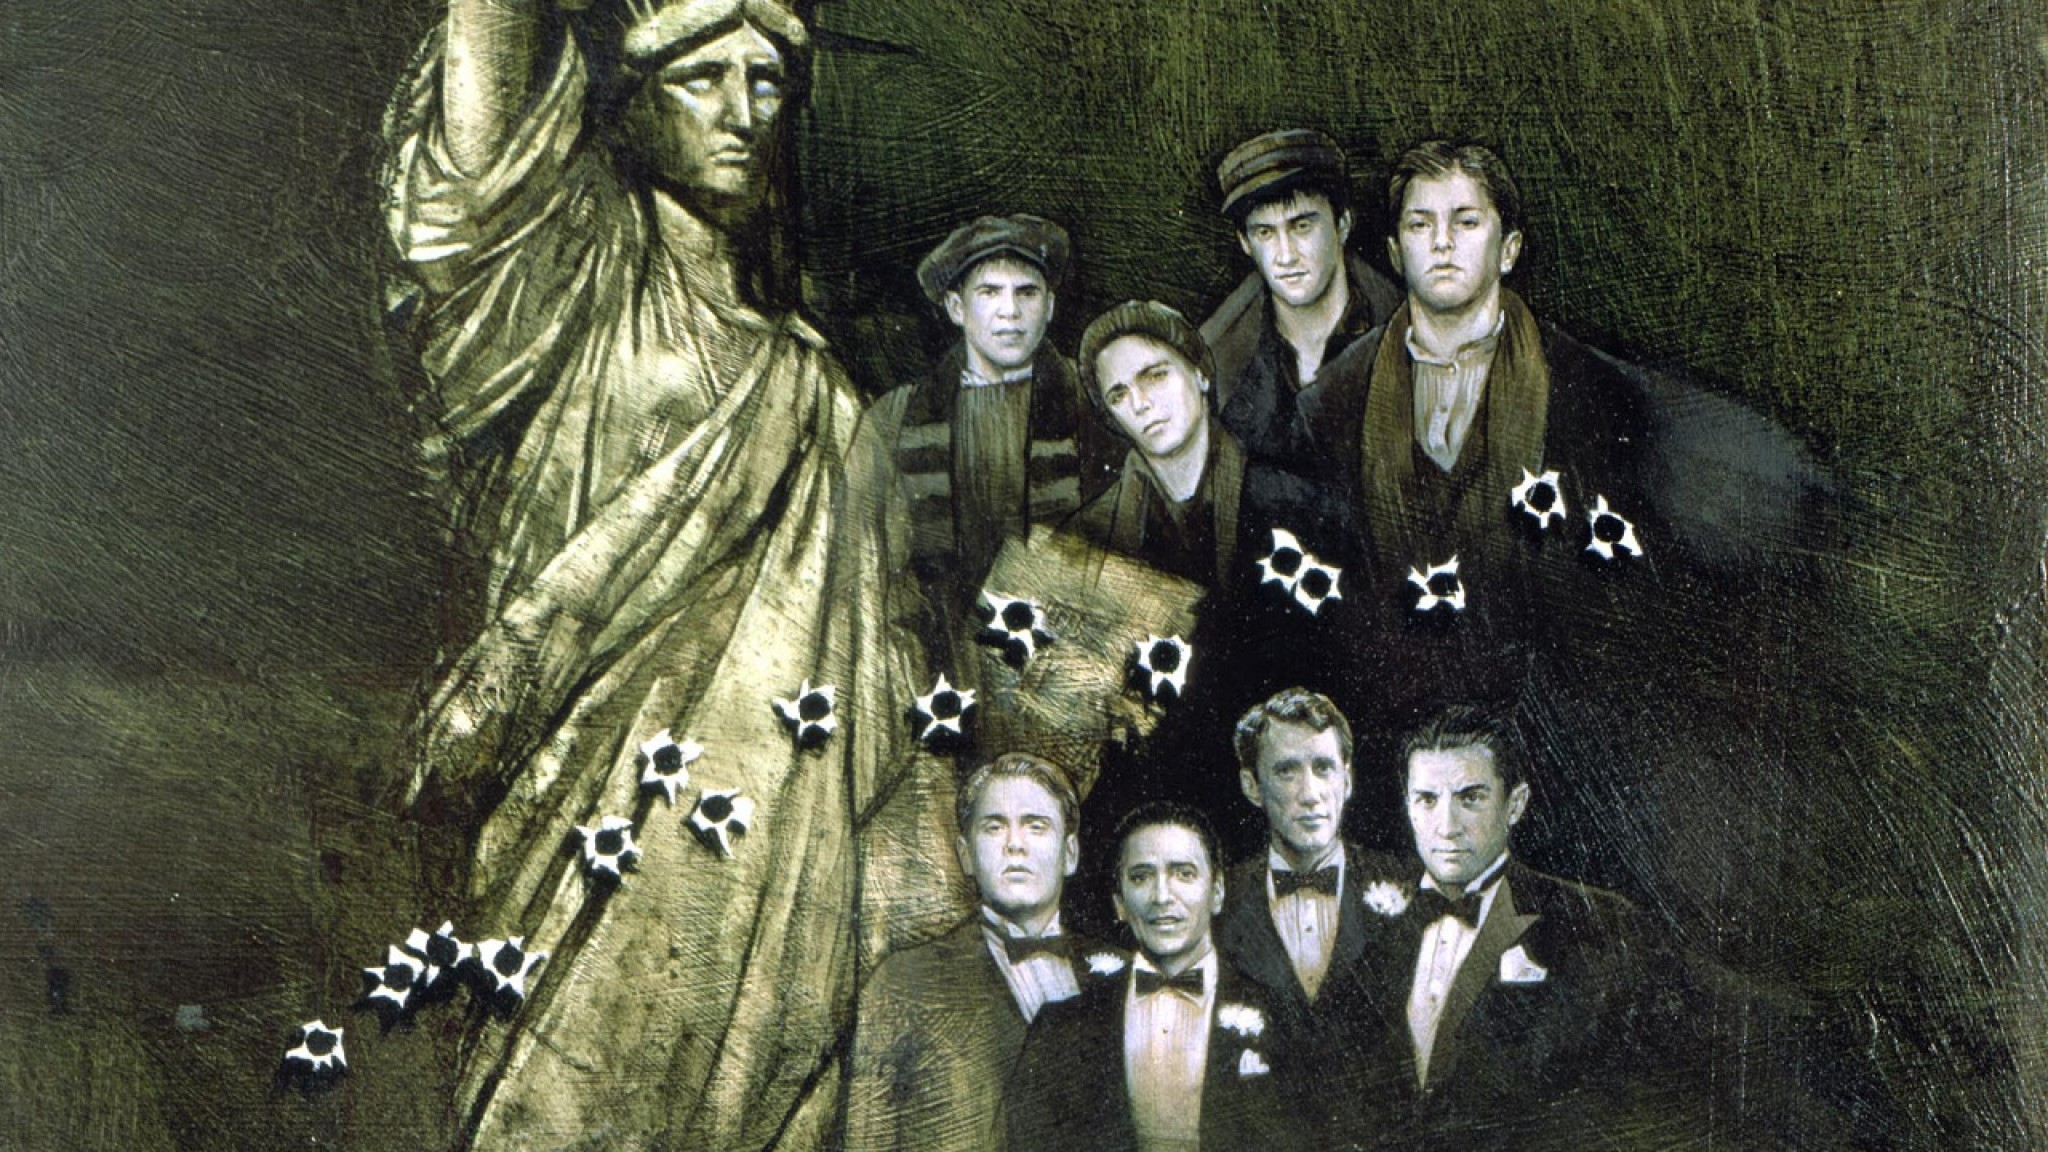 Wallpaper once upon a time in america, boys, statue of liberty